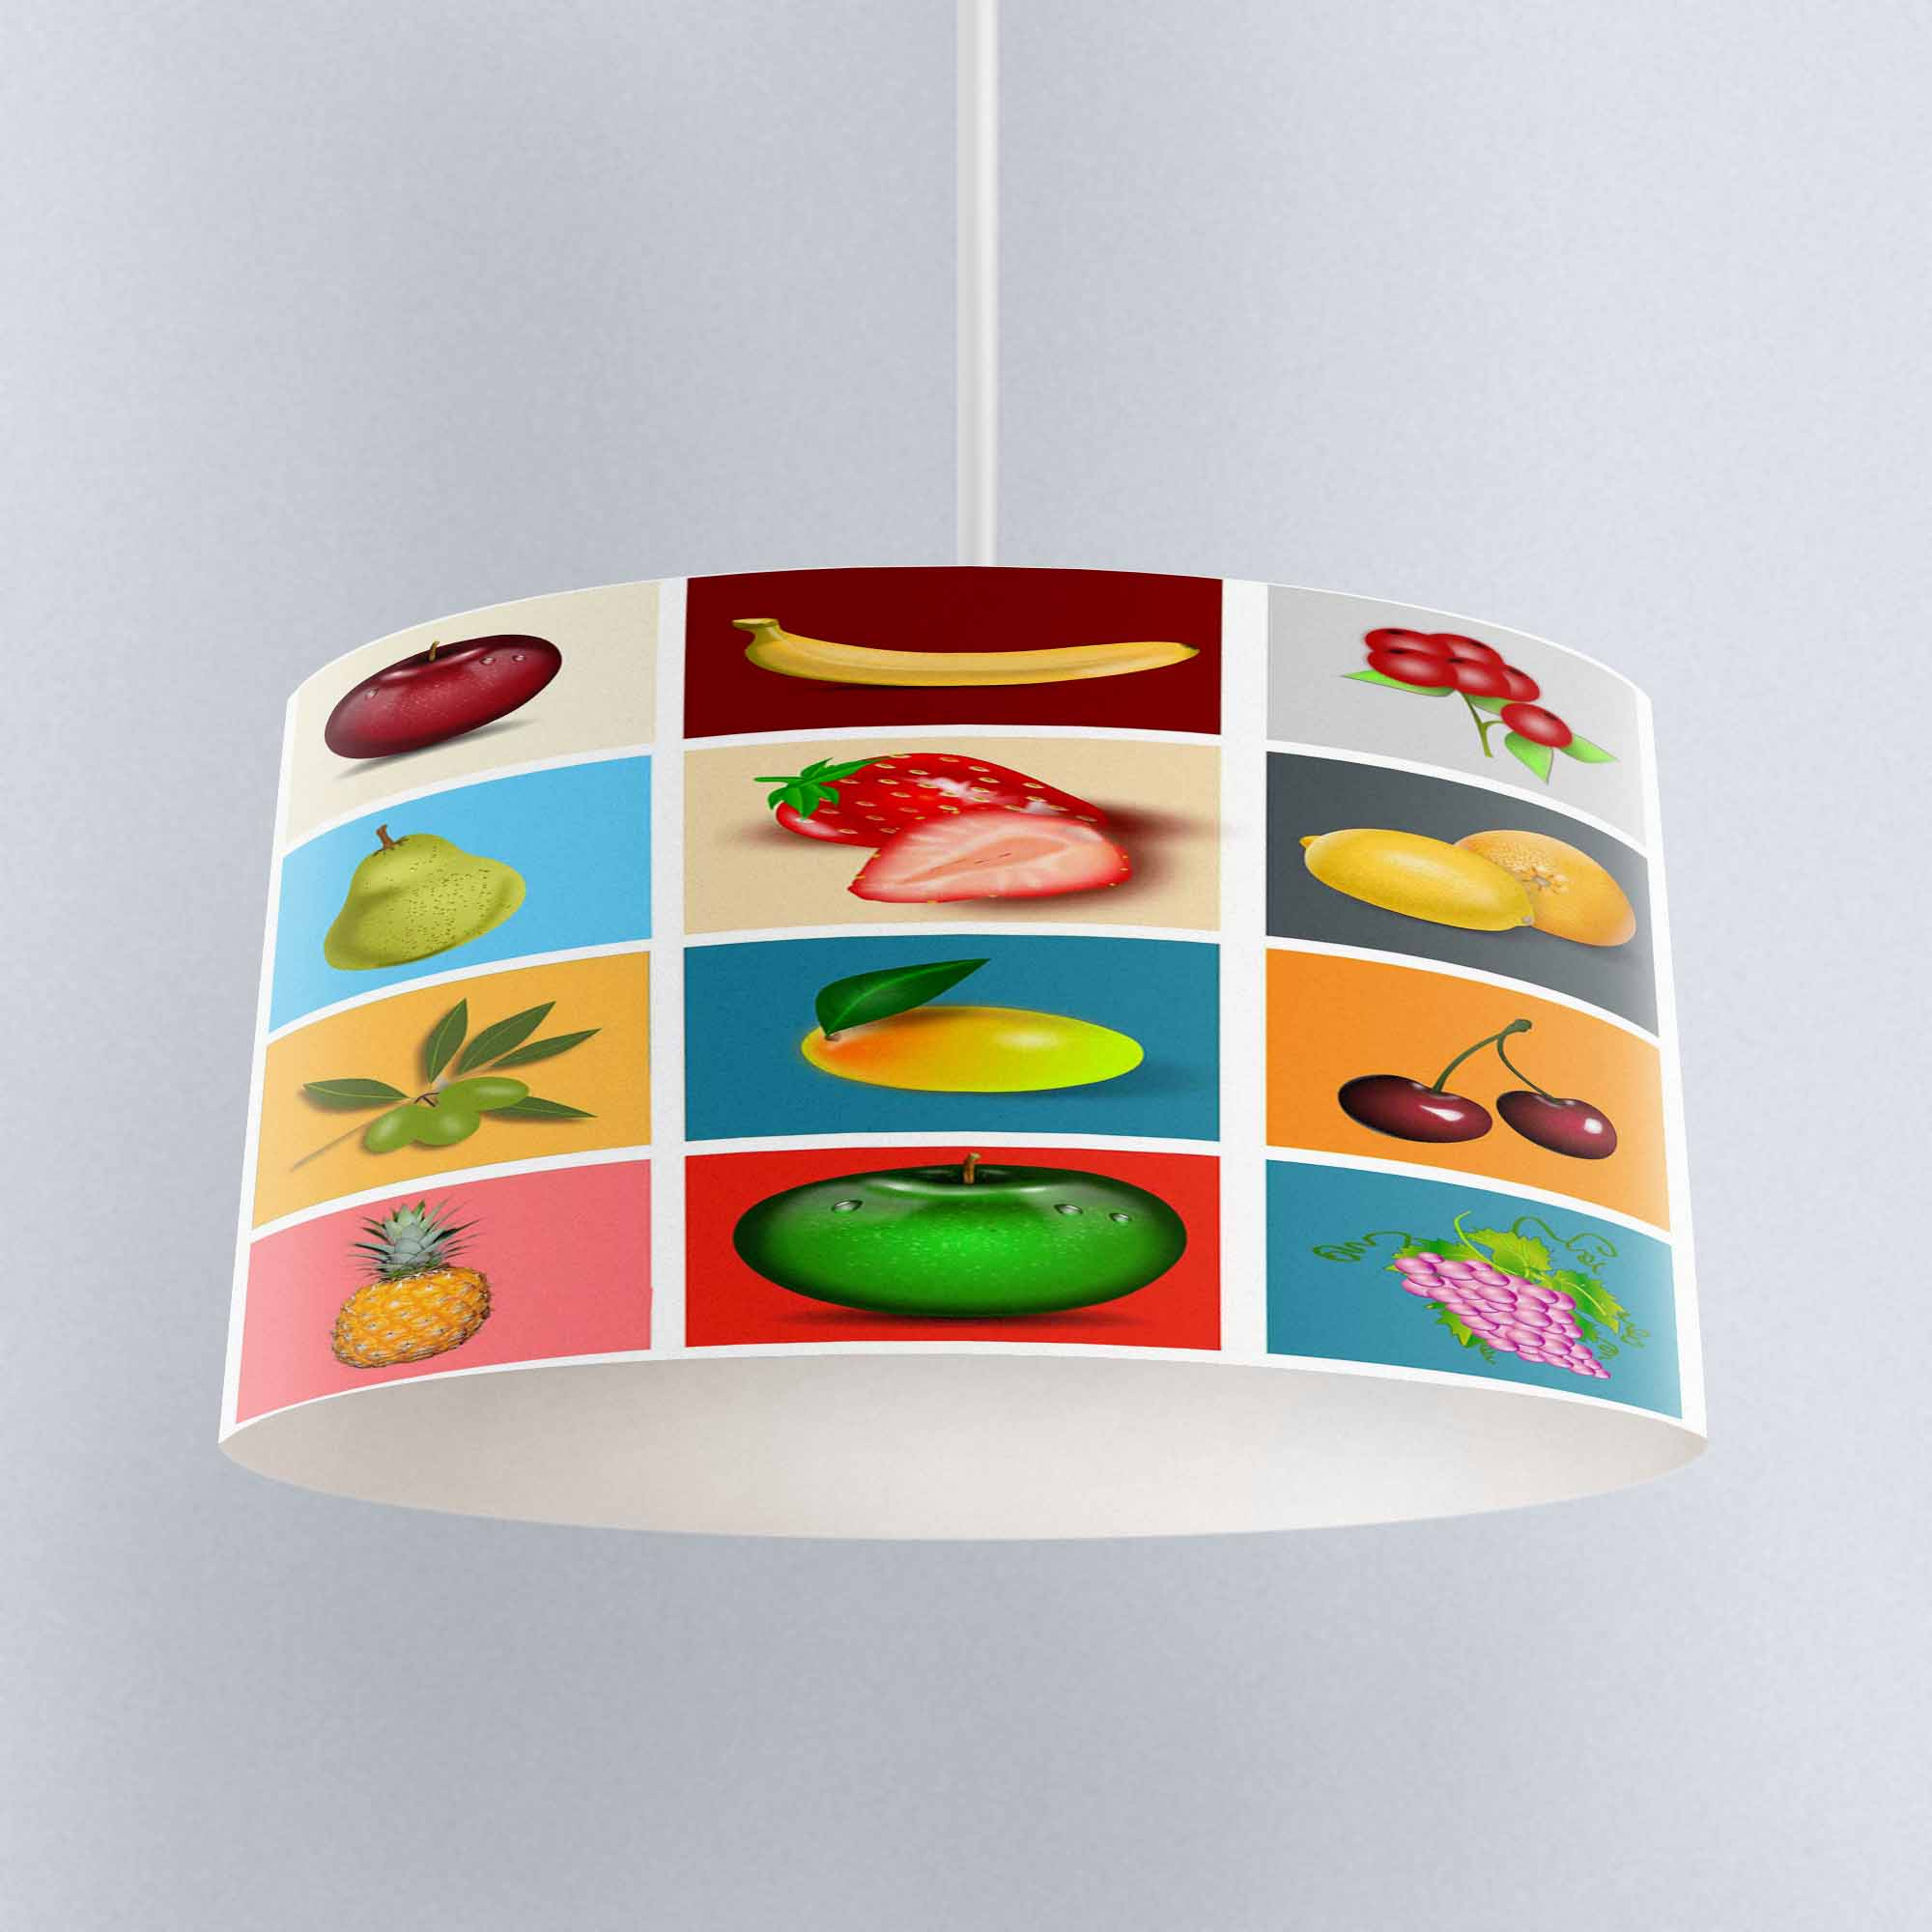 Else Patchwork Colored Fruits Printed Fabric Kitchen Chandelier Lamp Drum Lampshade Floor Ceiling Pendant Light Shade|Lamp Covers & Shades| |  - title=